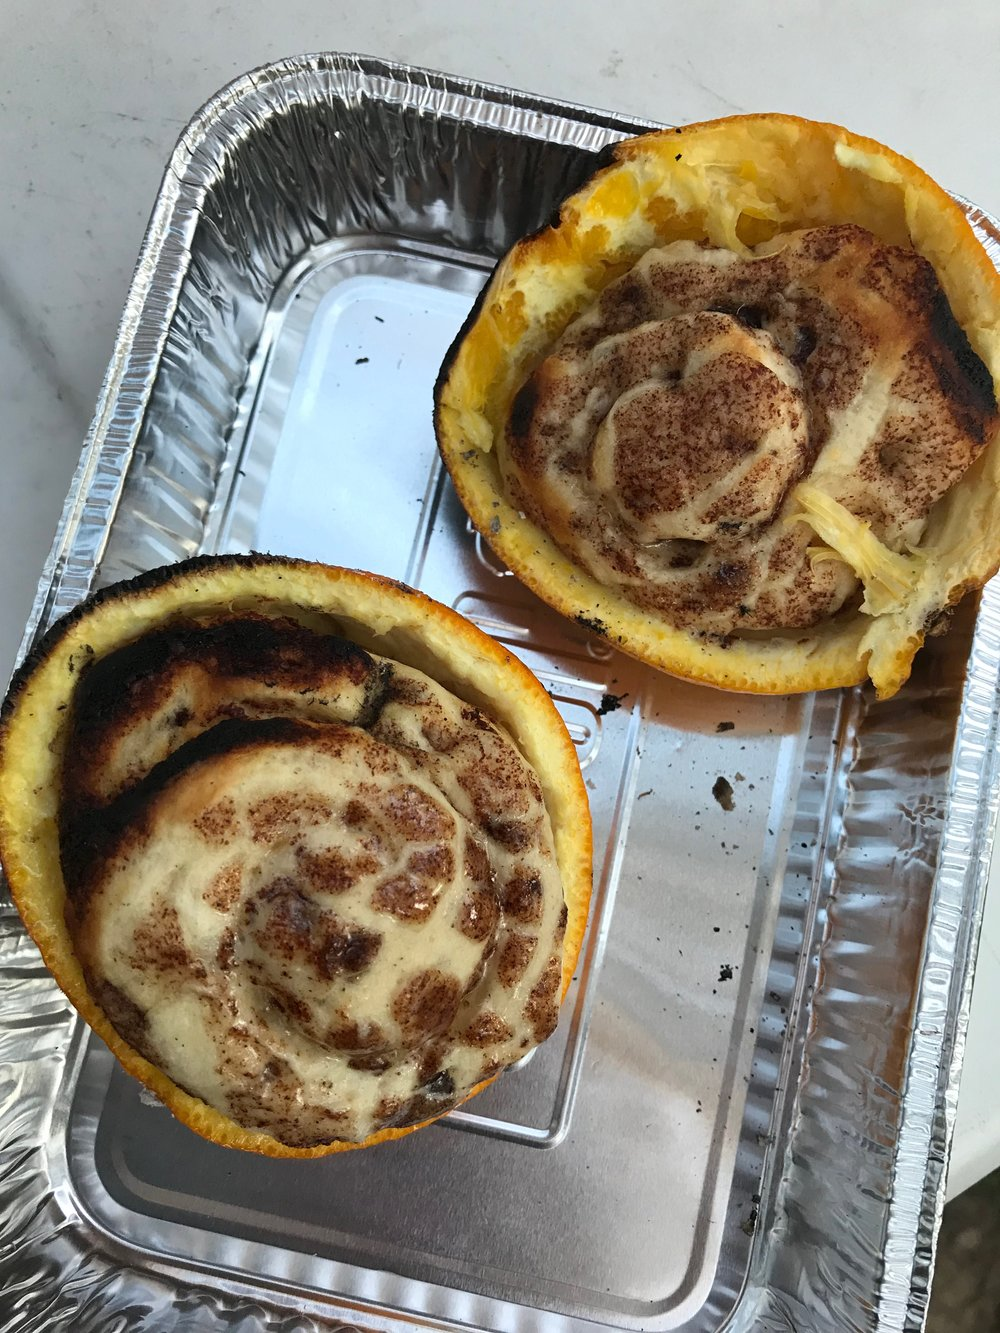 Cinnamon Rolls cooked directly on the fire in Orange Peels - SO GOOD